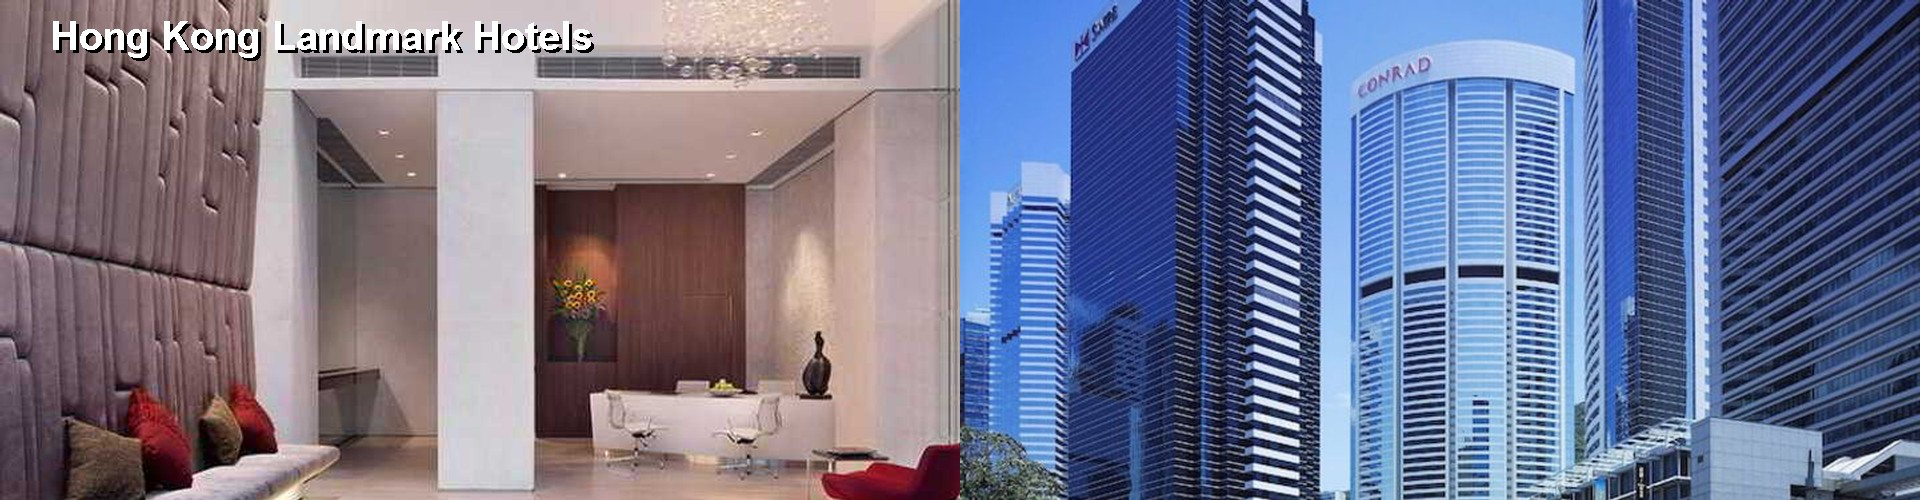 5 Best Hotels near Hong Kong Landmark